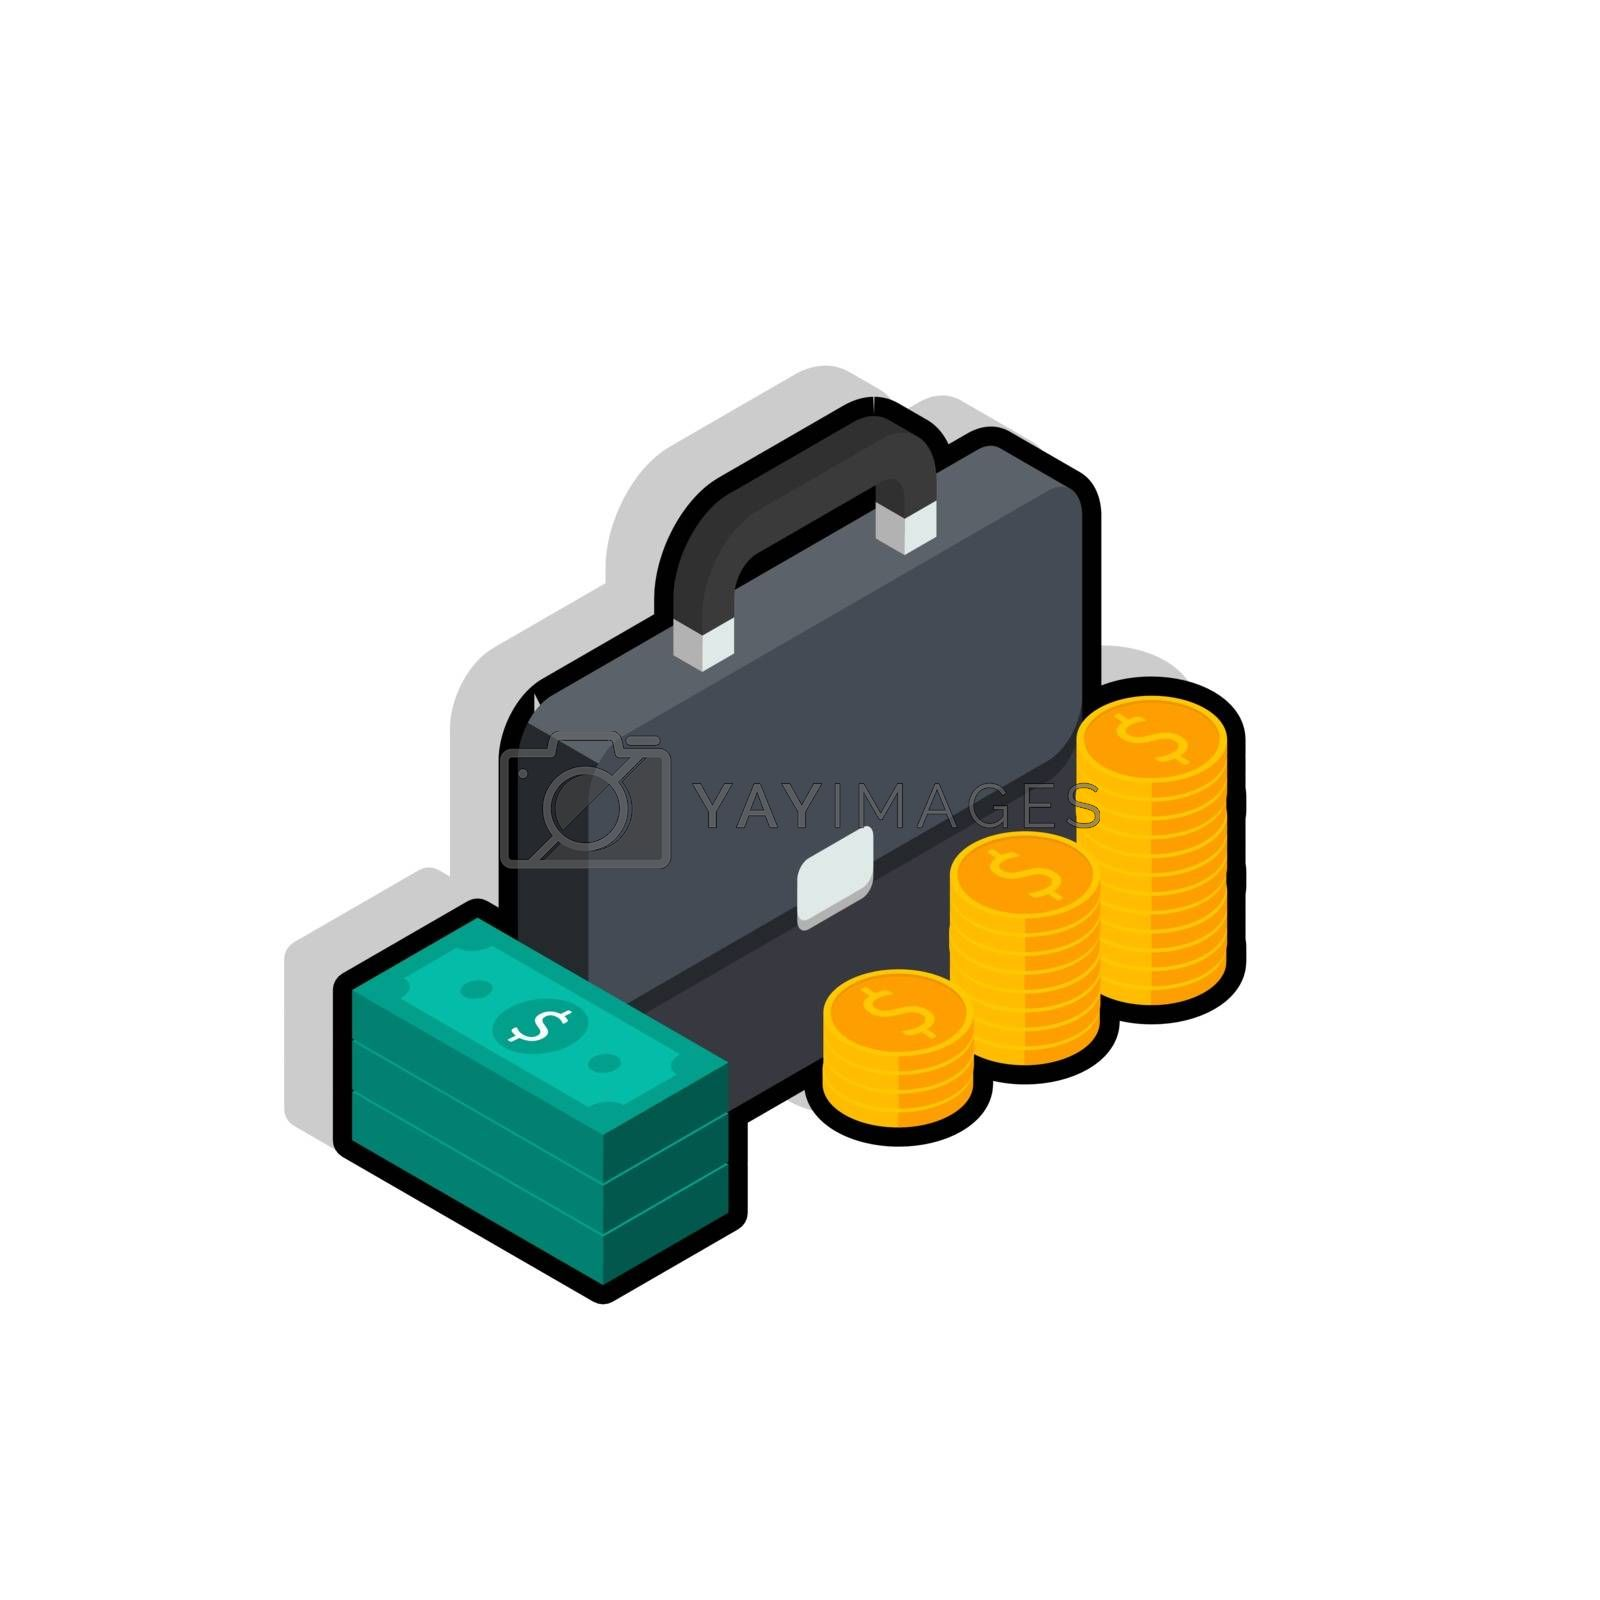 Briefcase, Dollar money cash icon, Gold coin stack right view Black Stroke and Shadow icon vector isometric. Flat style vector illustration.